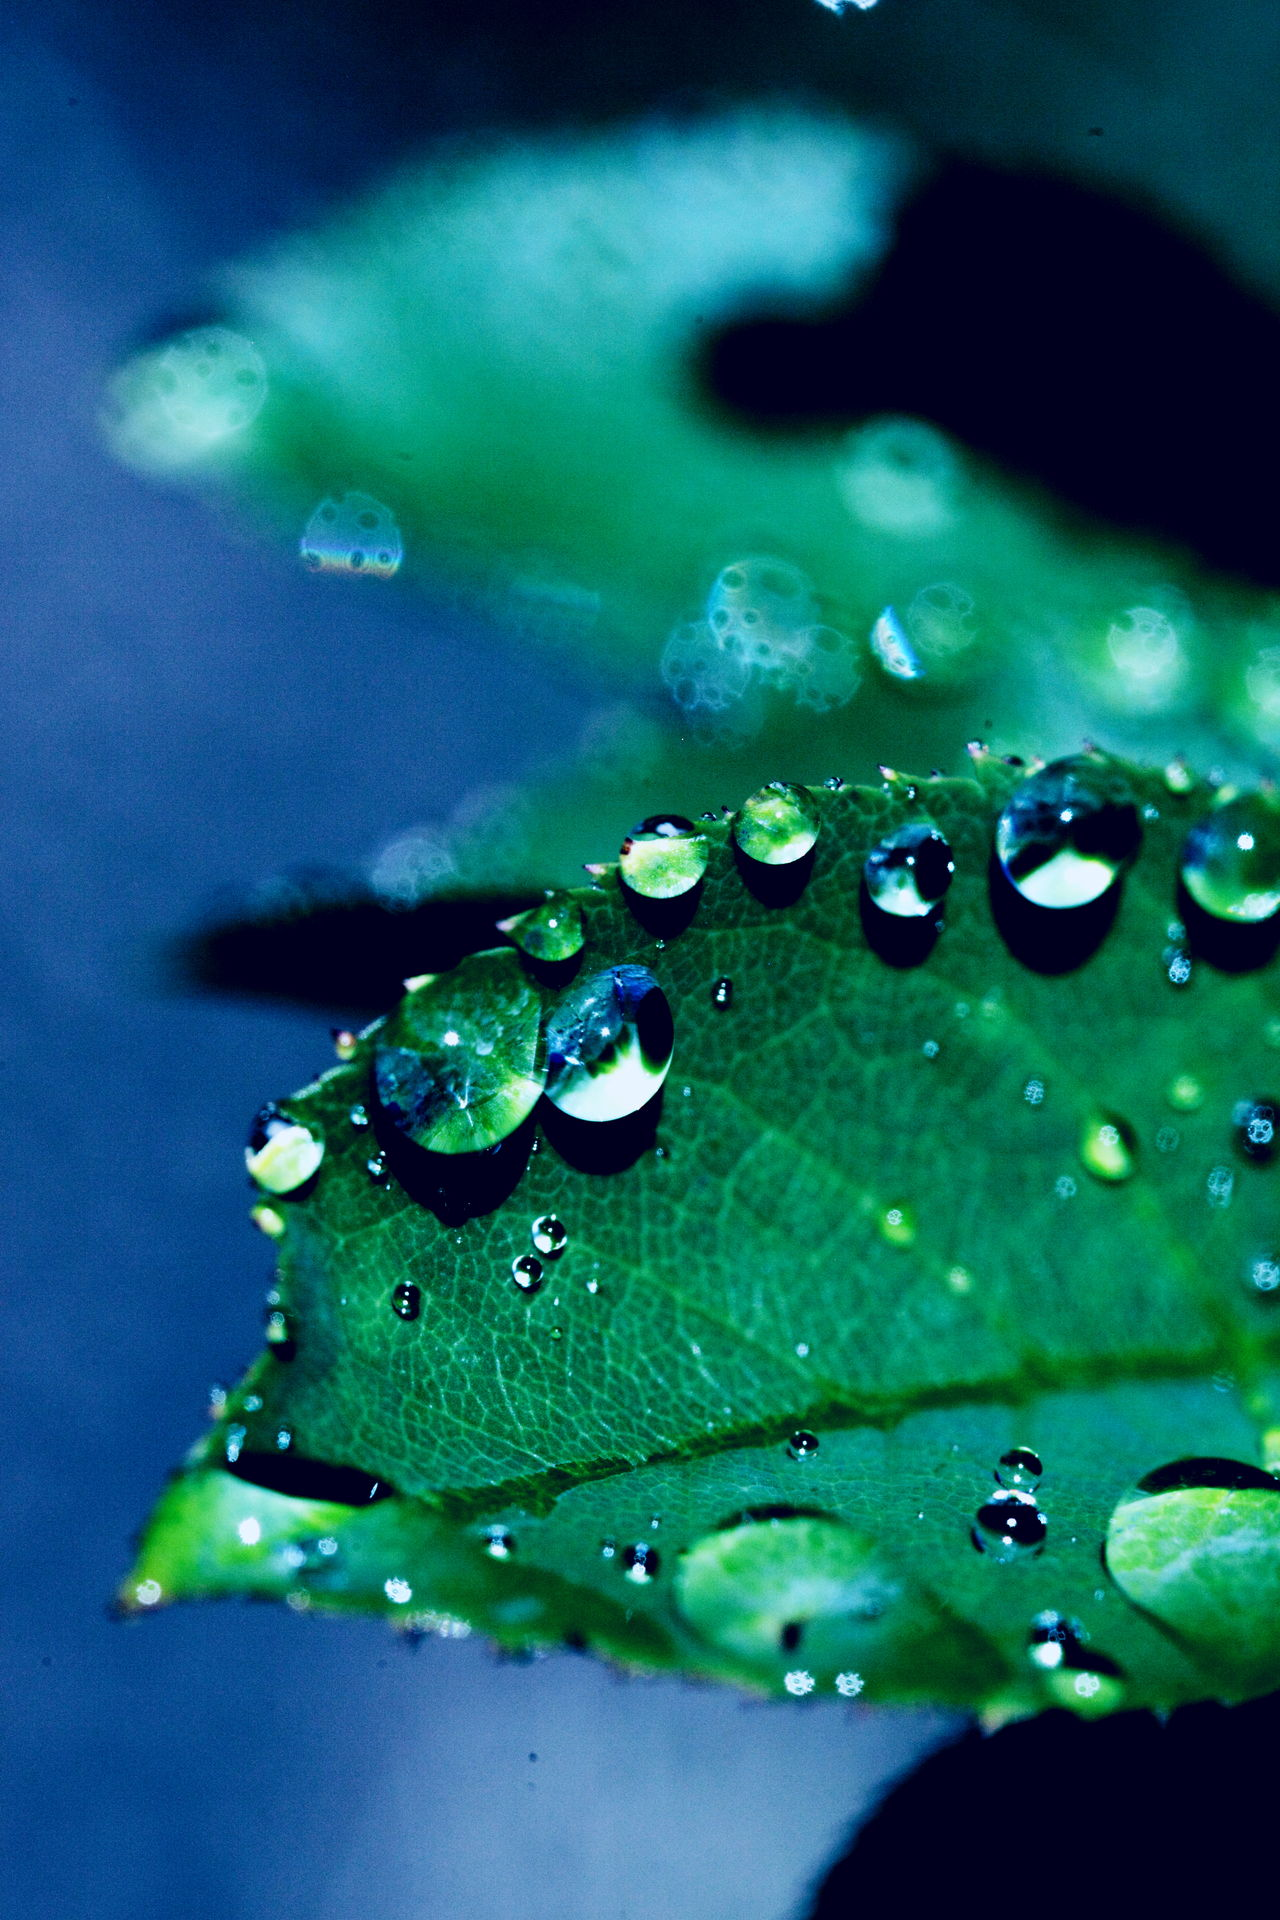 Beauty In Nature Close-up Day Drop Freshness Green Color Leaf Nature No People Outdoors RainDrop Water Wet